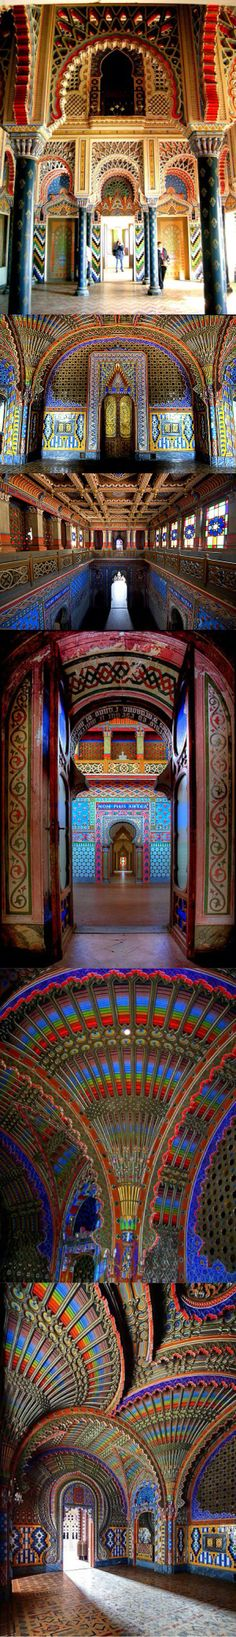 The Peacock Room Castello di Sammezzano in Reggello, Tuscany, Italy. Originally built in 1605, it was re-designed in the late 1800's. It was later used as a luxury hotel until closure in the mid to late 1990's. In 2012 they began updates. #destinations #building #world #architecture #places #art #travel #pheed